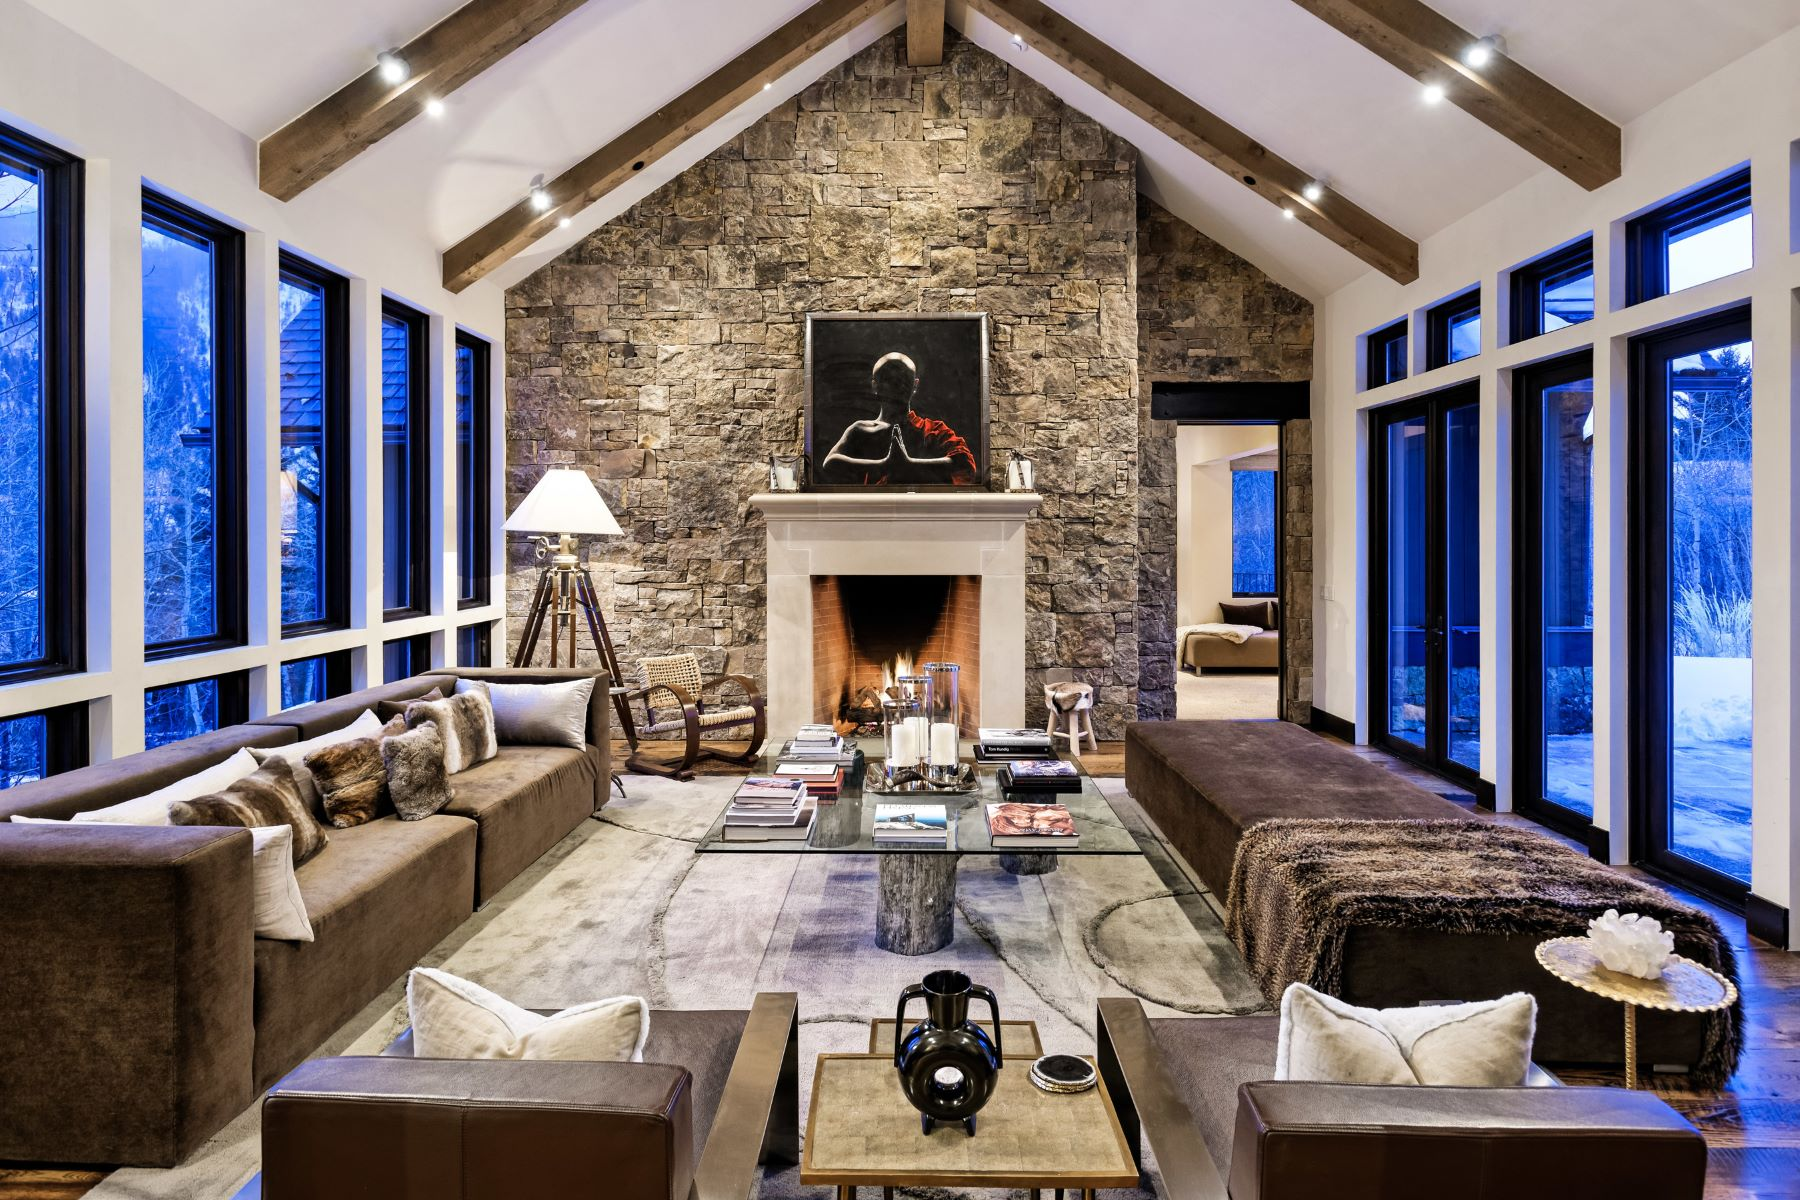 Single Family Homes for Sale at 190 West Lupine Drive 190 W Lupine Drive Aspen, Colorado 81611 United States